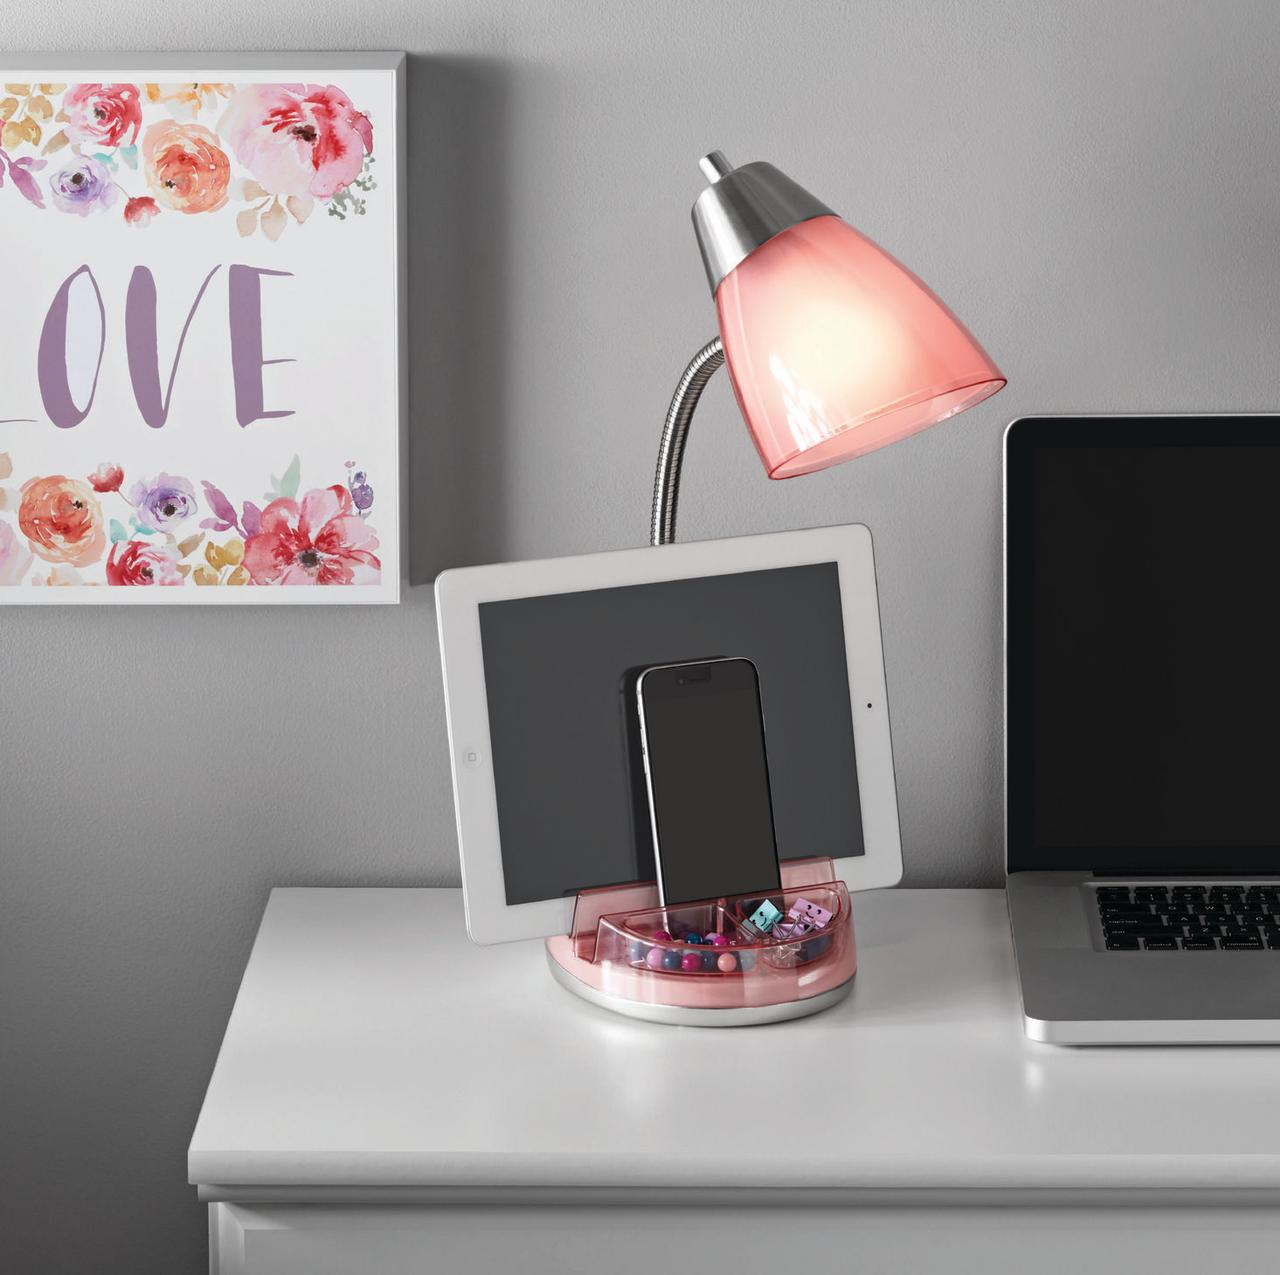 Mainstays Stylish Organizer Lamp